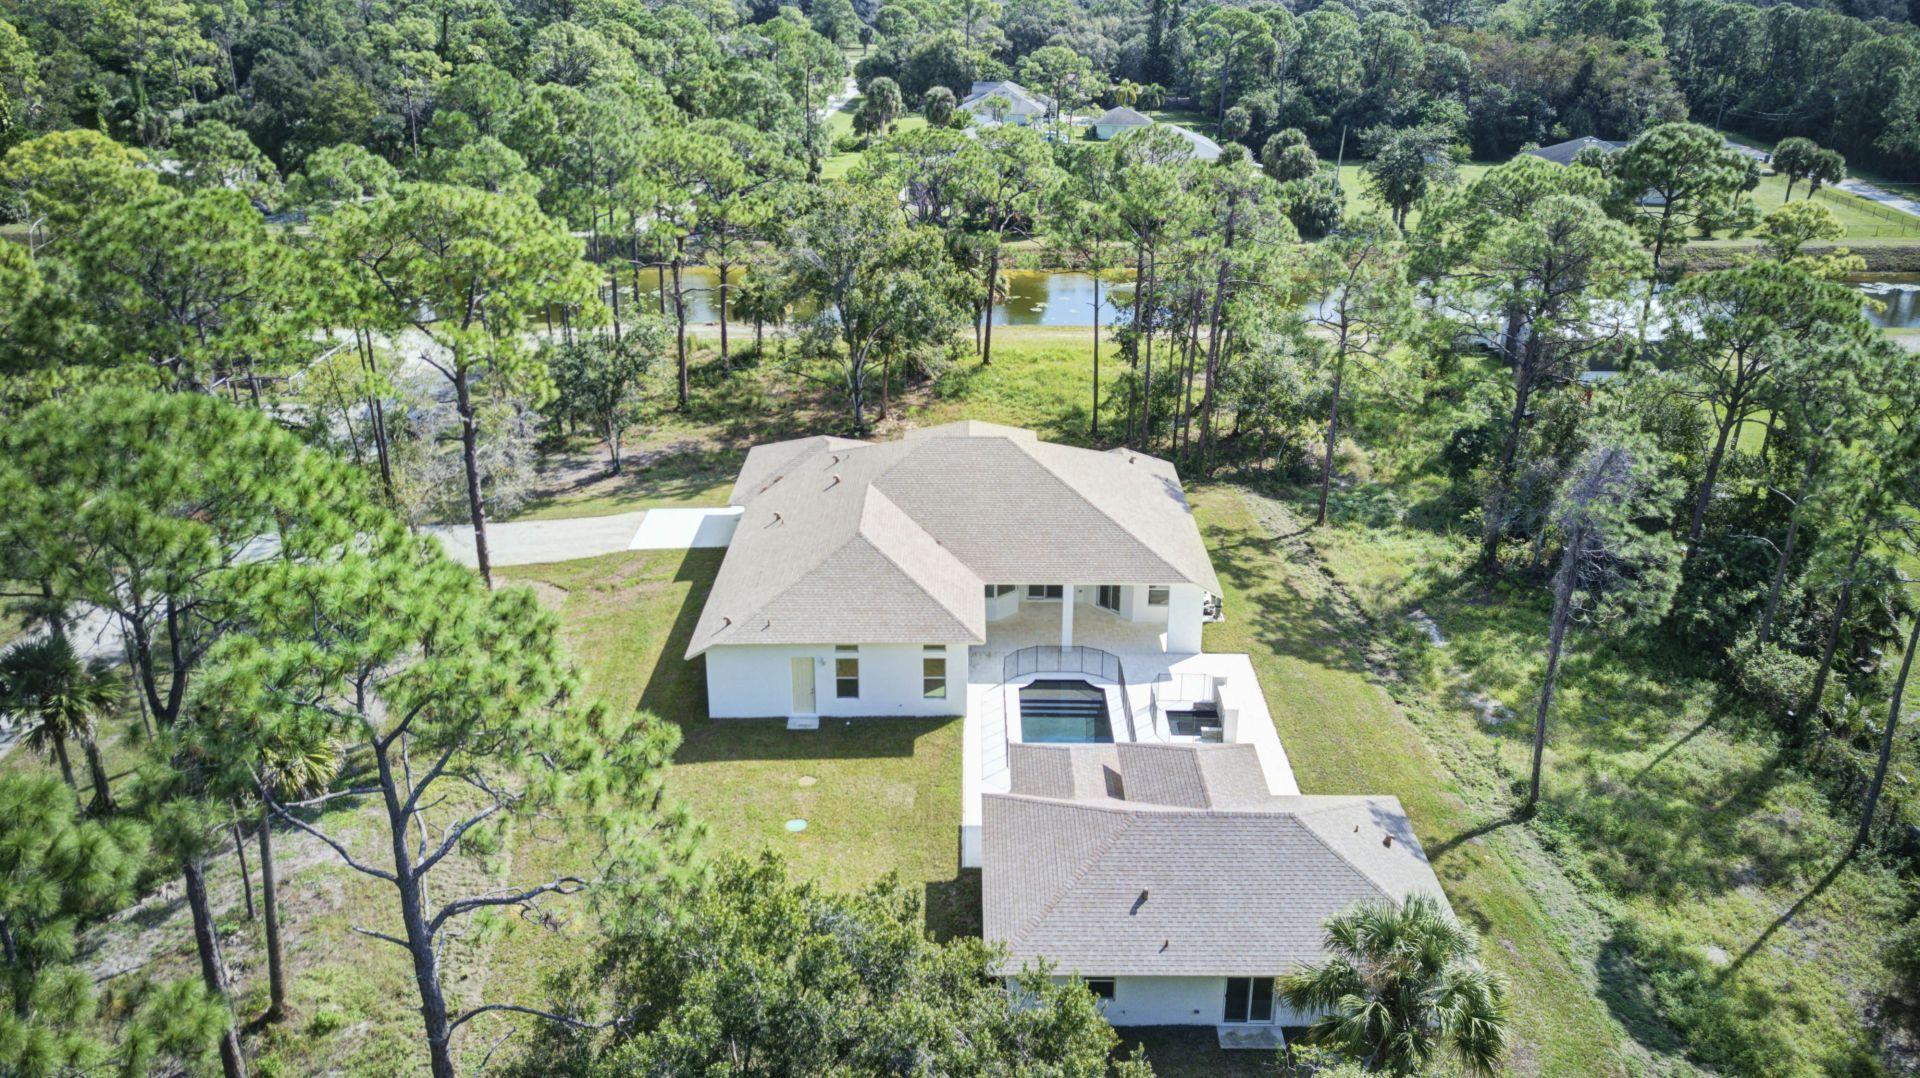 17038 61st Place, Loxahatchee, Florida